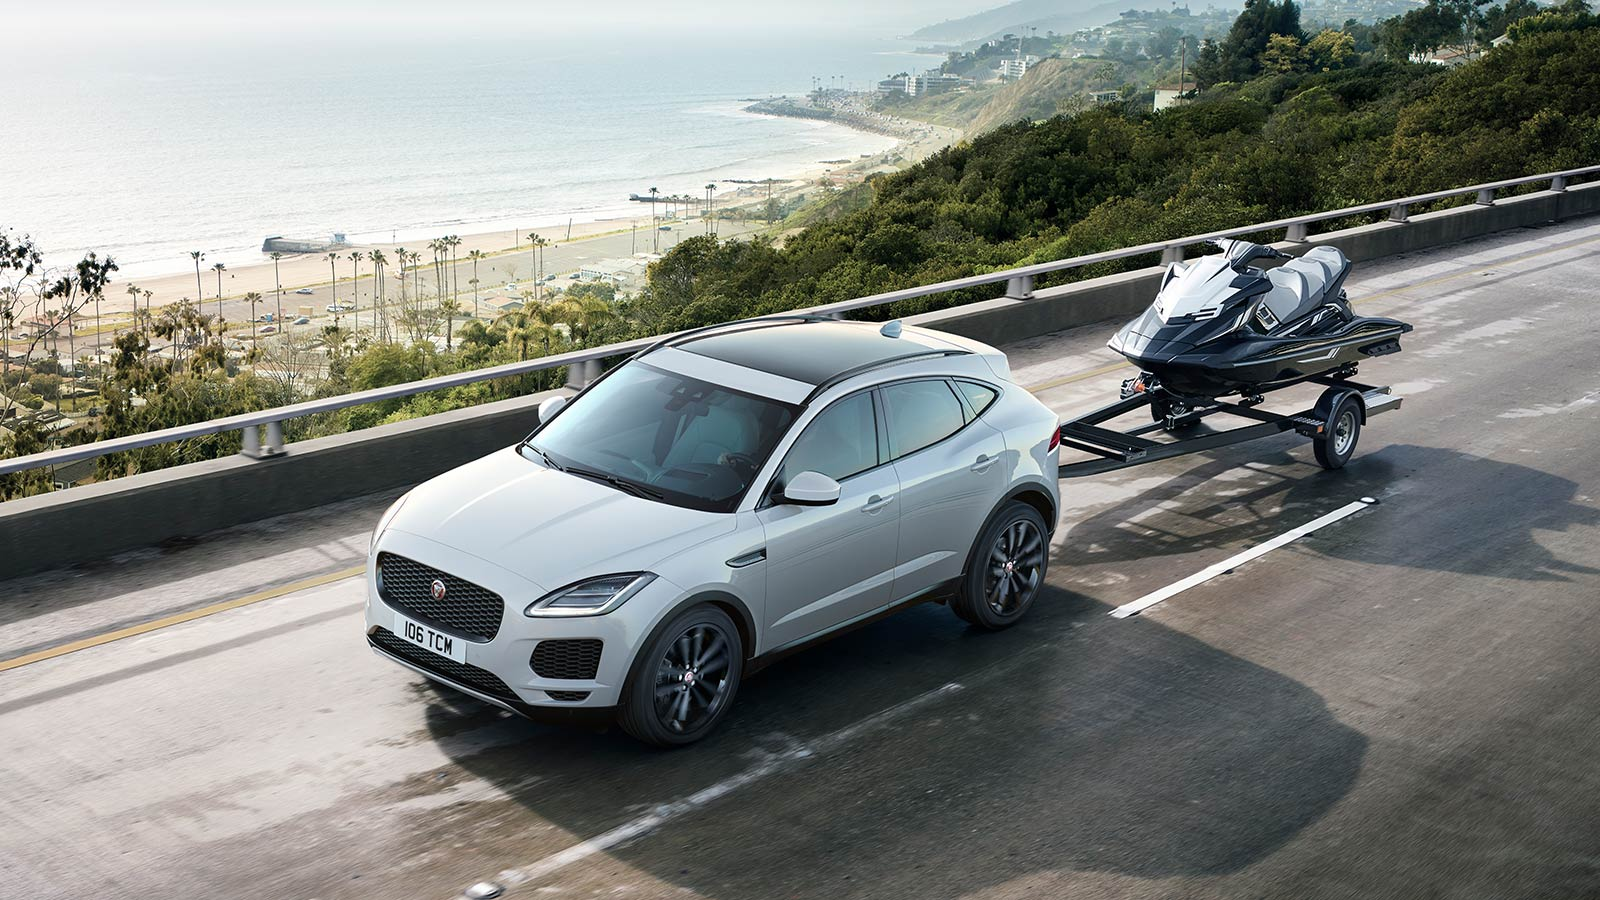 E -PACE S IN BORASCO GREY WITH OPTIONAL FEATURES FITTED TOWING A JETSKI ALONG A SEASIDE ROAD.